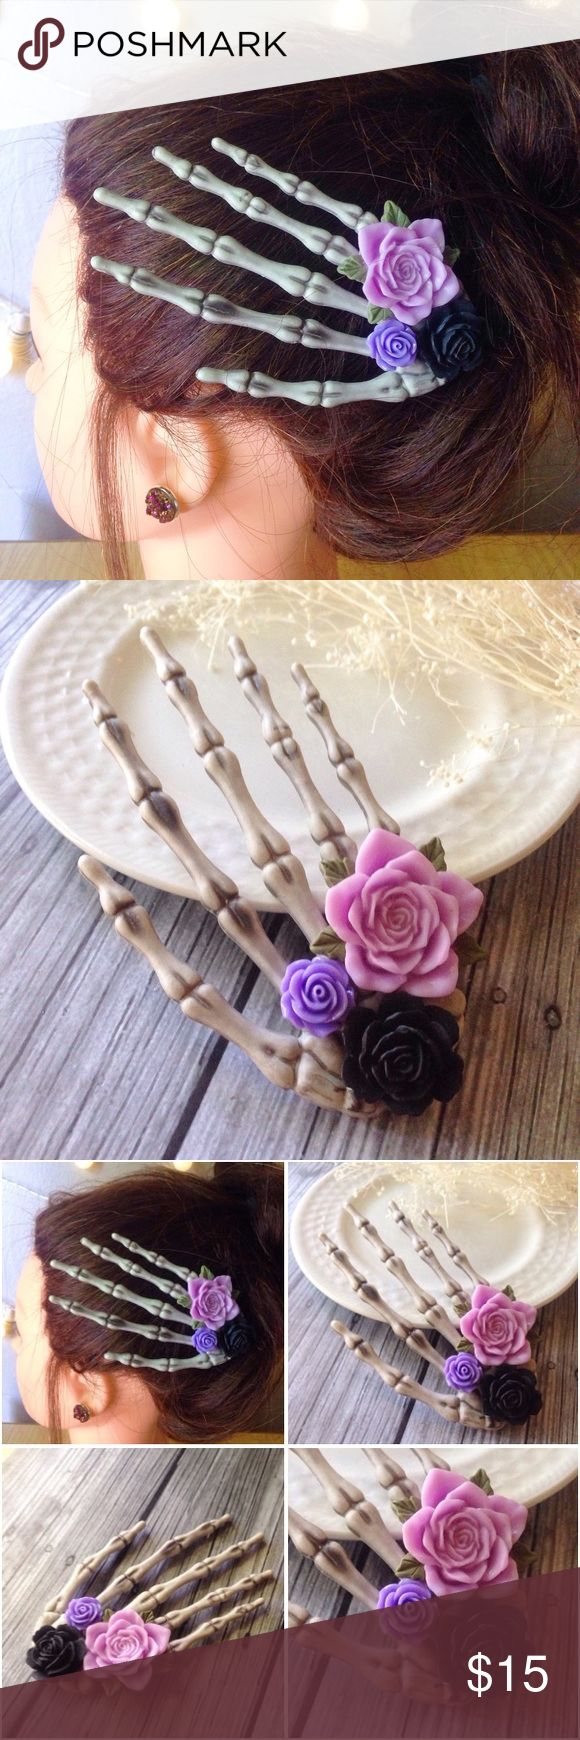 """Large skeleton hand hair clip with roses This lovely skeleton hand hair clip is adorned with black, violet and lavender roses. Hand measures almost 5"""". Definitely a statement pieceAn alligator clip is securely attached to the back and works well for all hair types. A perfect Halloween accessory, or if you like being spooky all yearHandmade by me & brand new. I also can do custom colored roses. Bundle & save 15% on 3+ items! Tags: October, autumn, fall, pinup,rockabilly,pastel,gothic,goth..."""